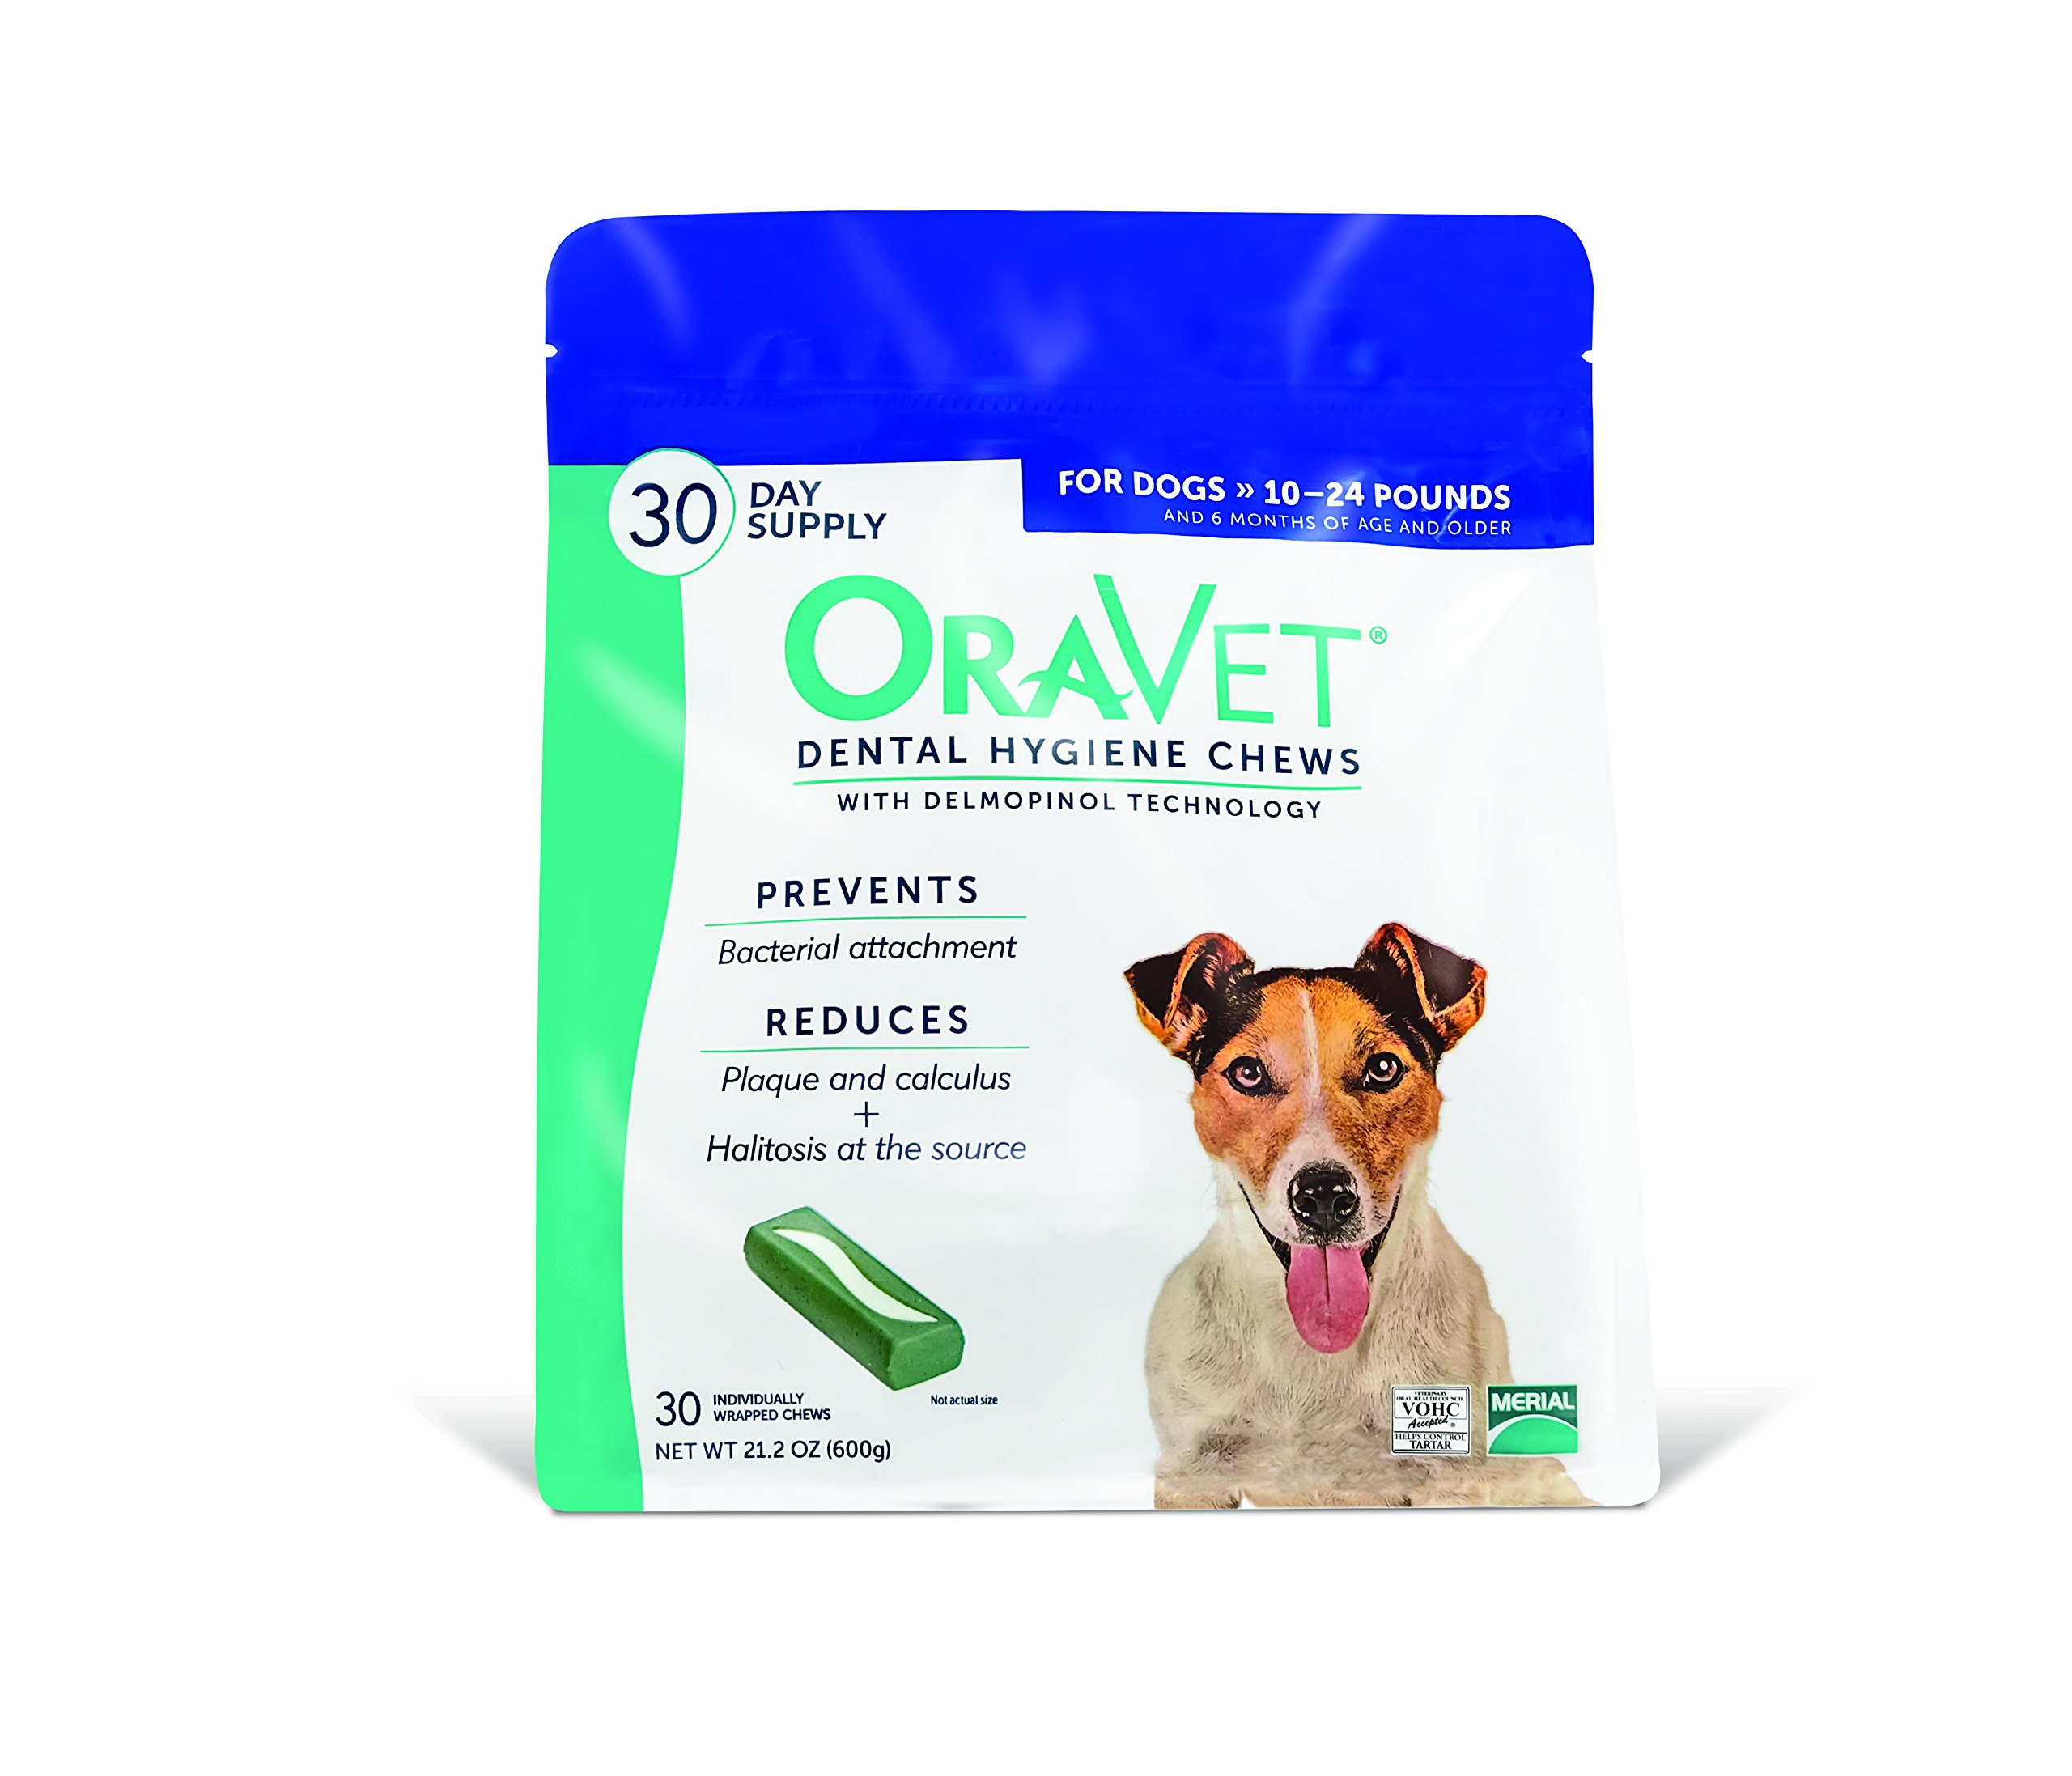 Oravet Merial Dental Hygiene Chew for Dogs 10-24lbs, 30 Count